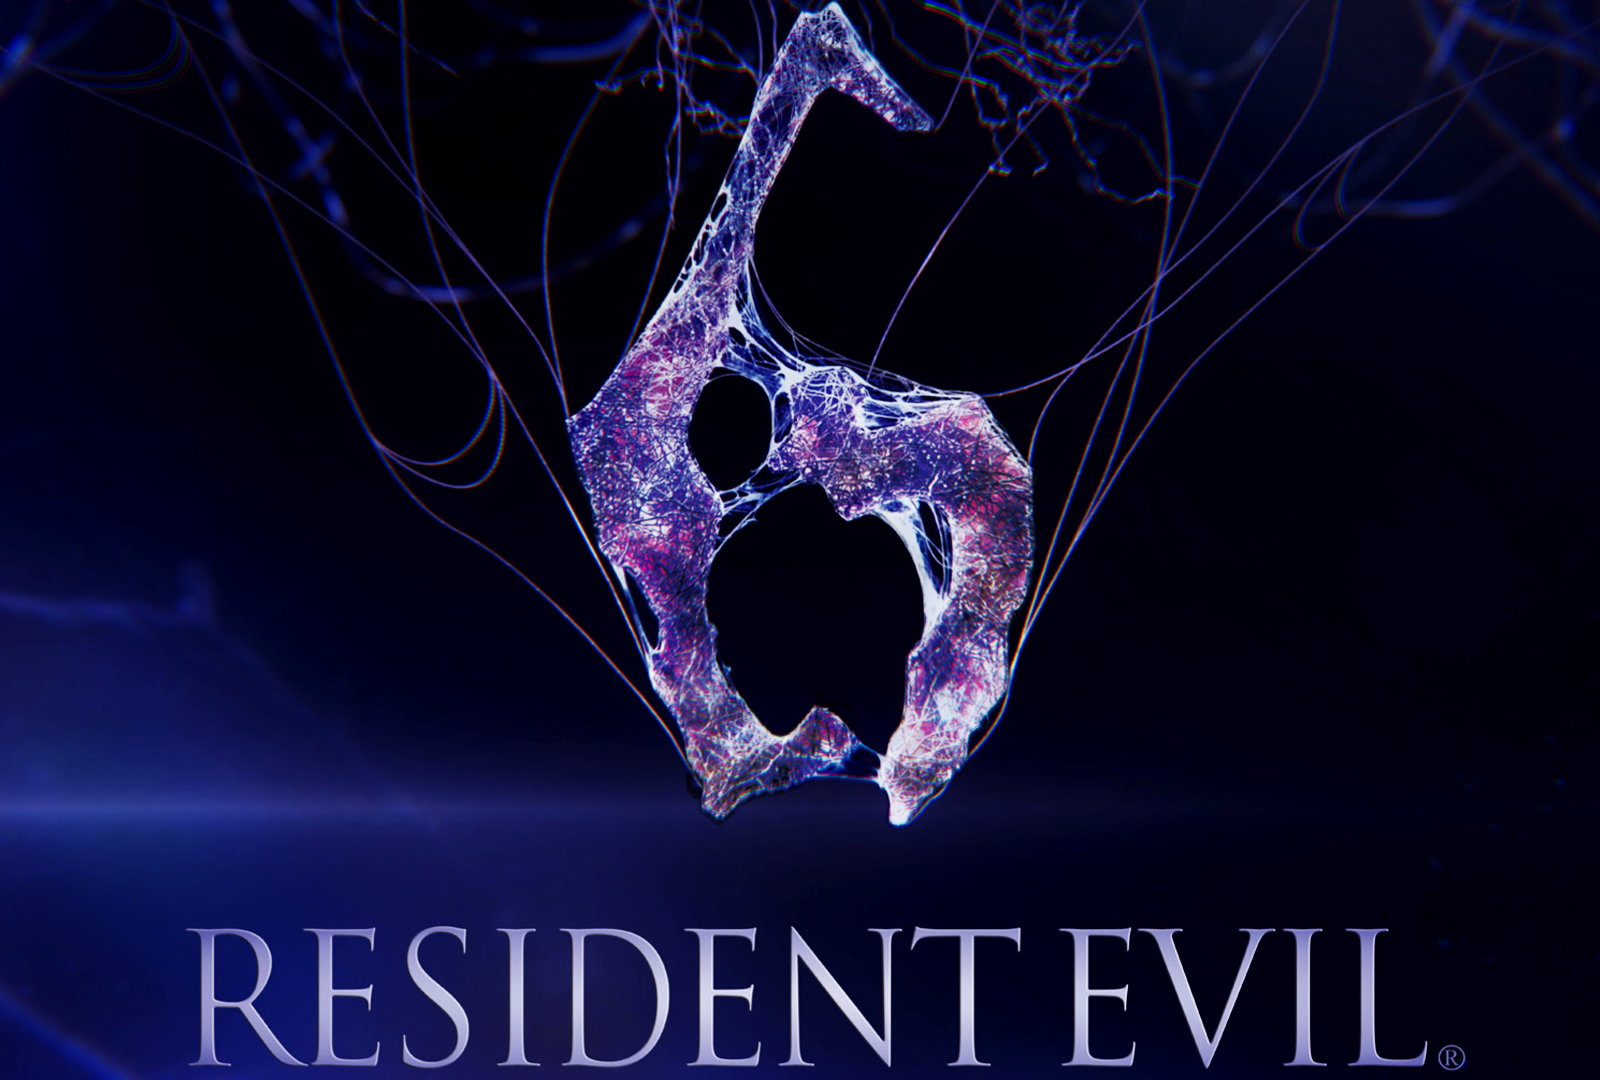 mashababko: Resident Evil 5 Wallpaper Hd